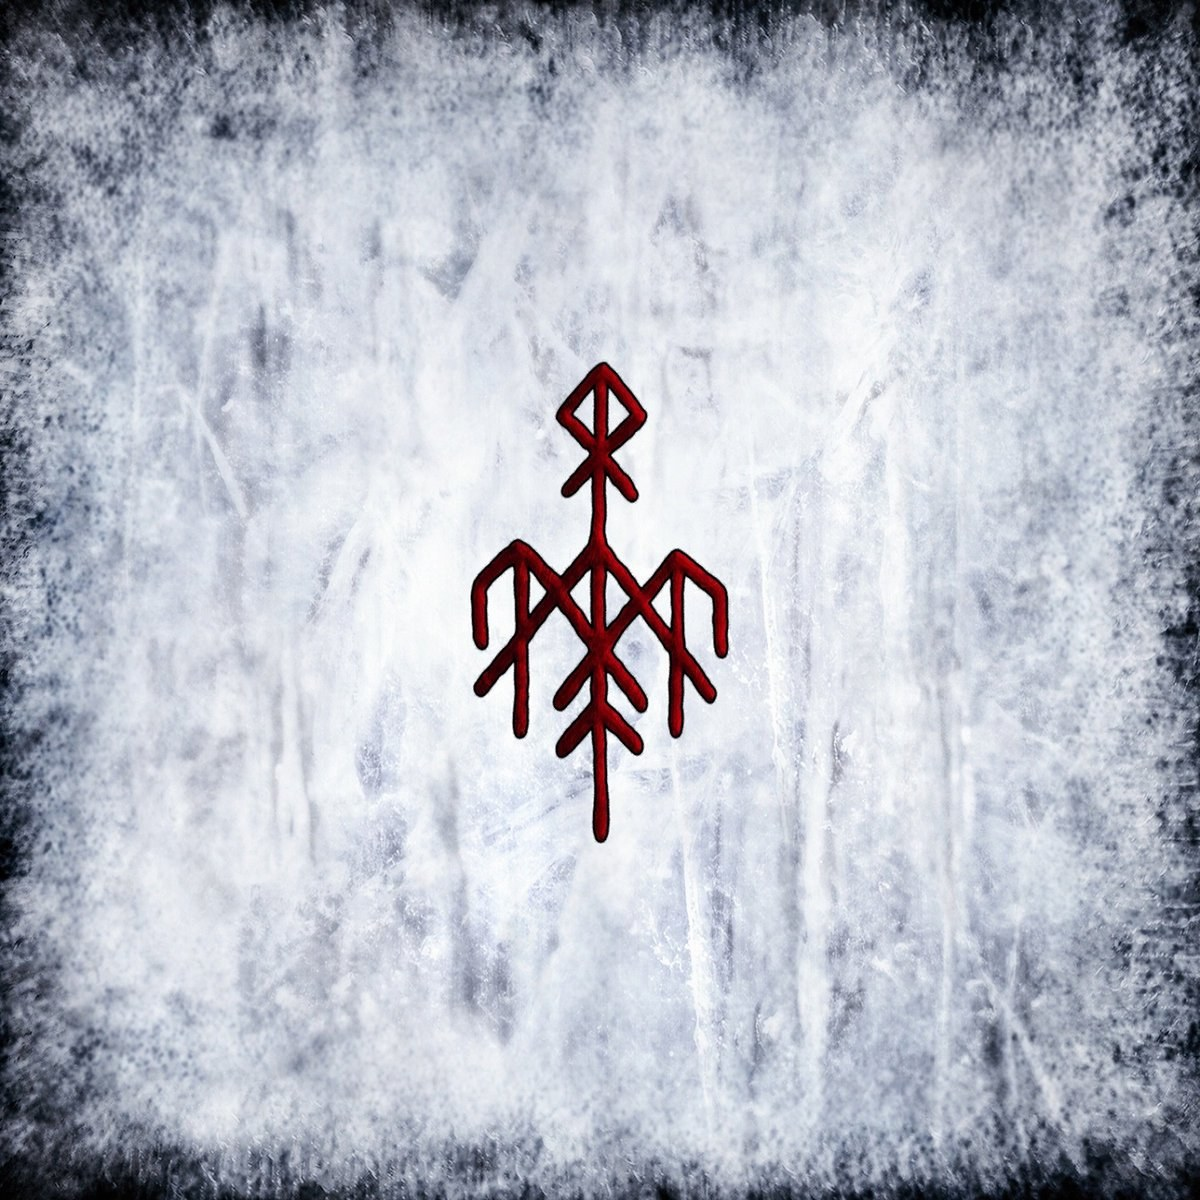 Review for Wardruna - Runaljod - Gap Var Ginnunga